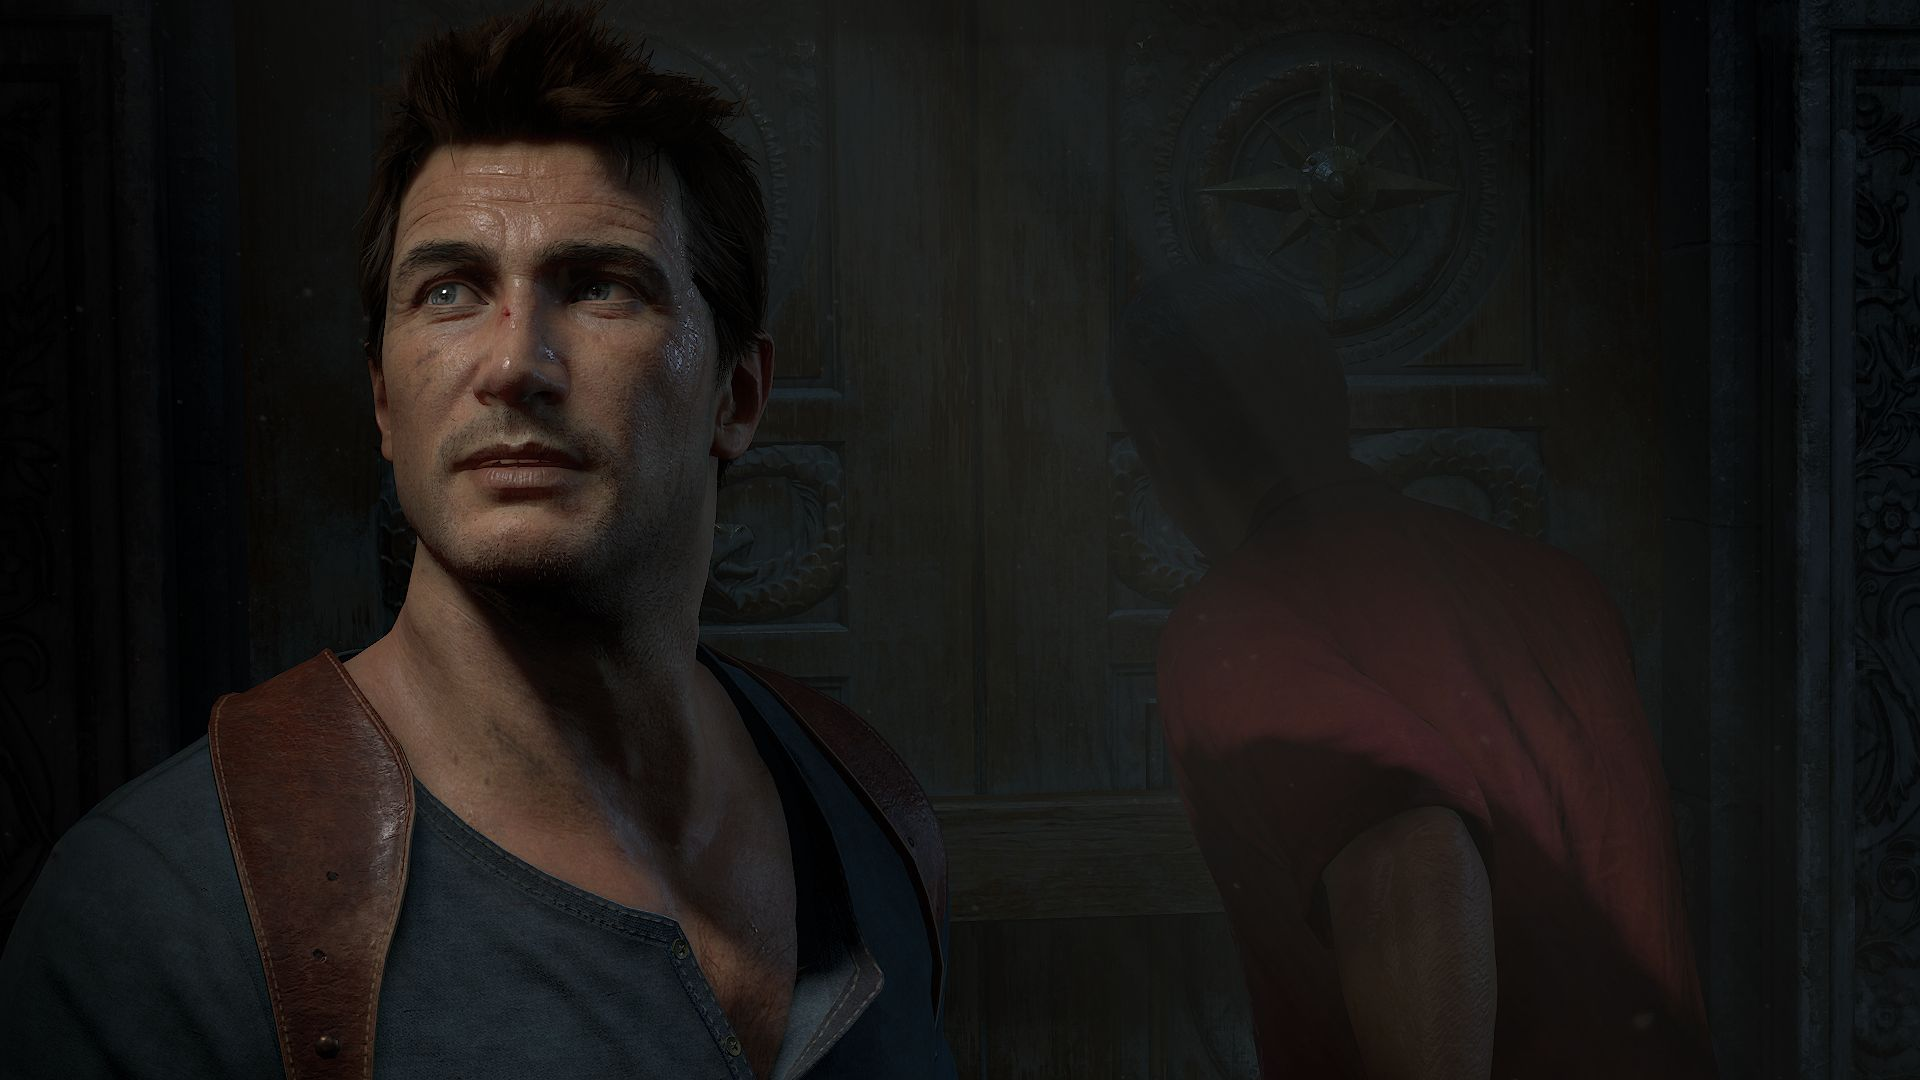 Naughty Dog Hides An Awesome Easter Egg In The Uncharted 4 Gameplay Demo